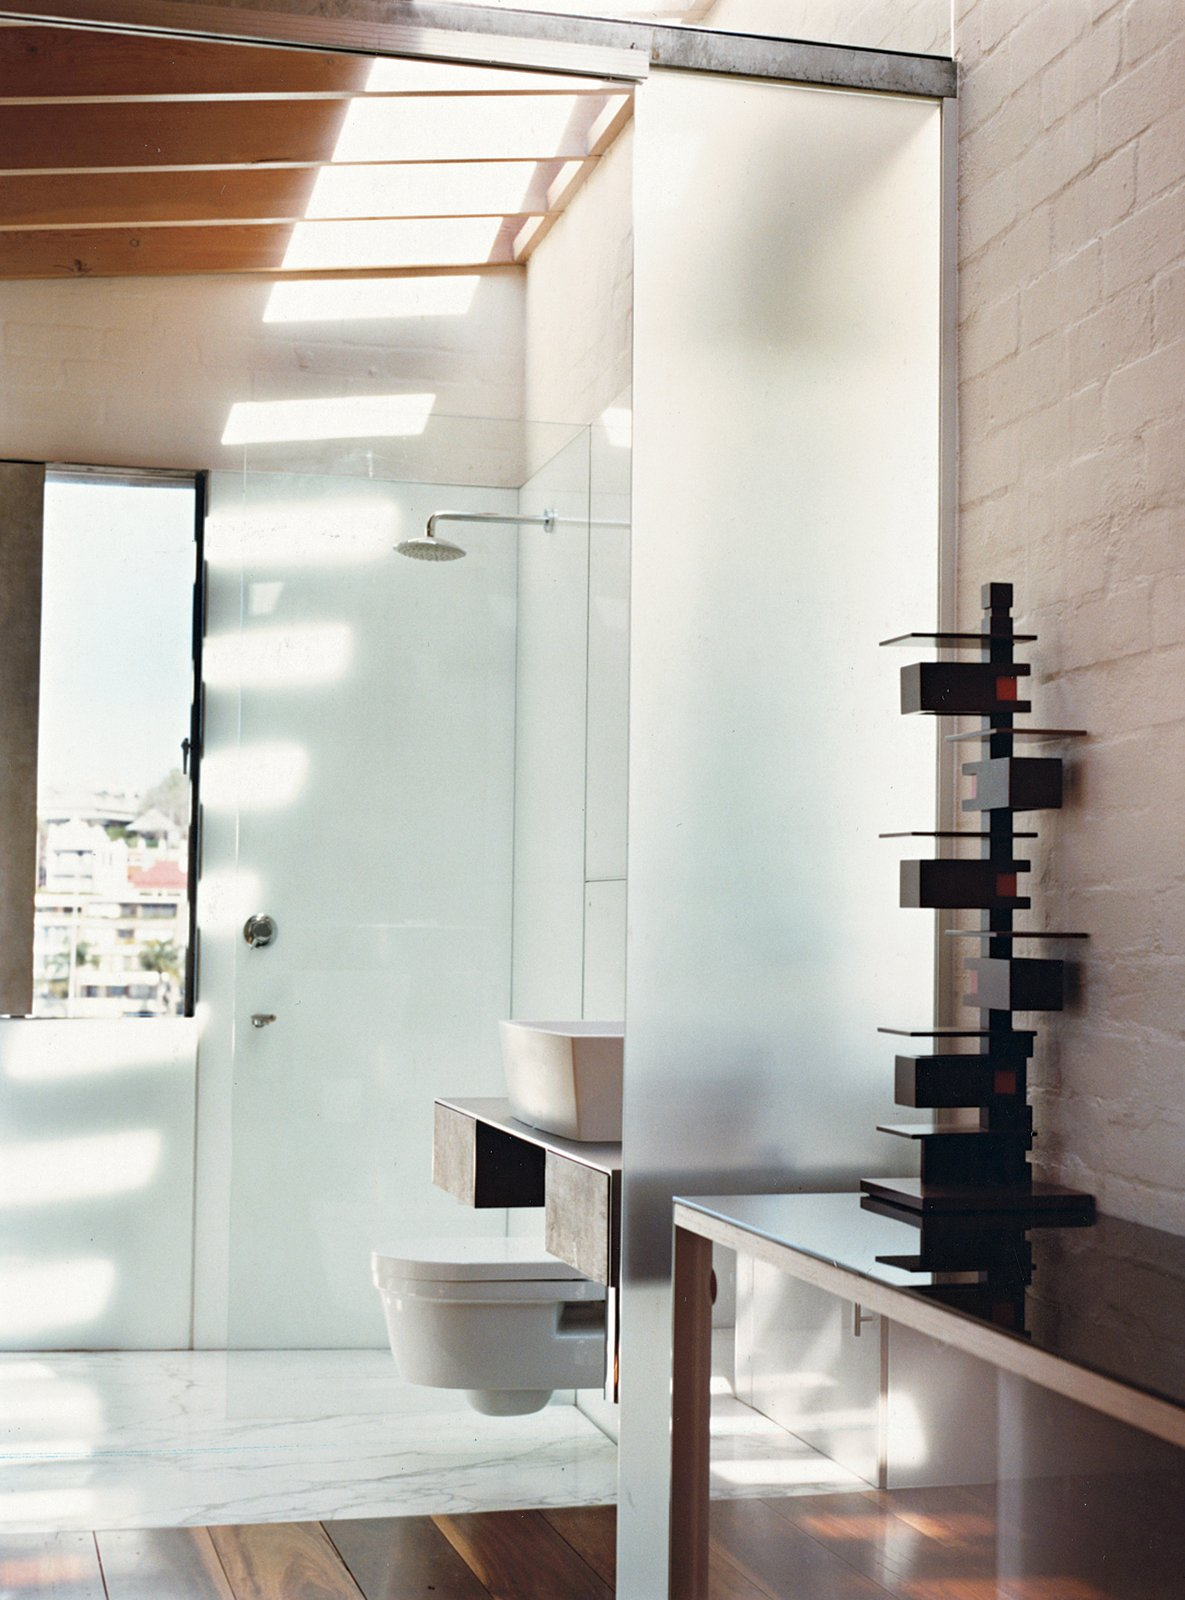 The sun cuts down into the upstairs bathroom through skylights, casting rhythmic shadows of roof beams onto the floor and walls. The bathroom includes a cantilevered toilet by Catalano.